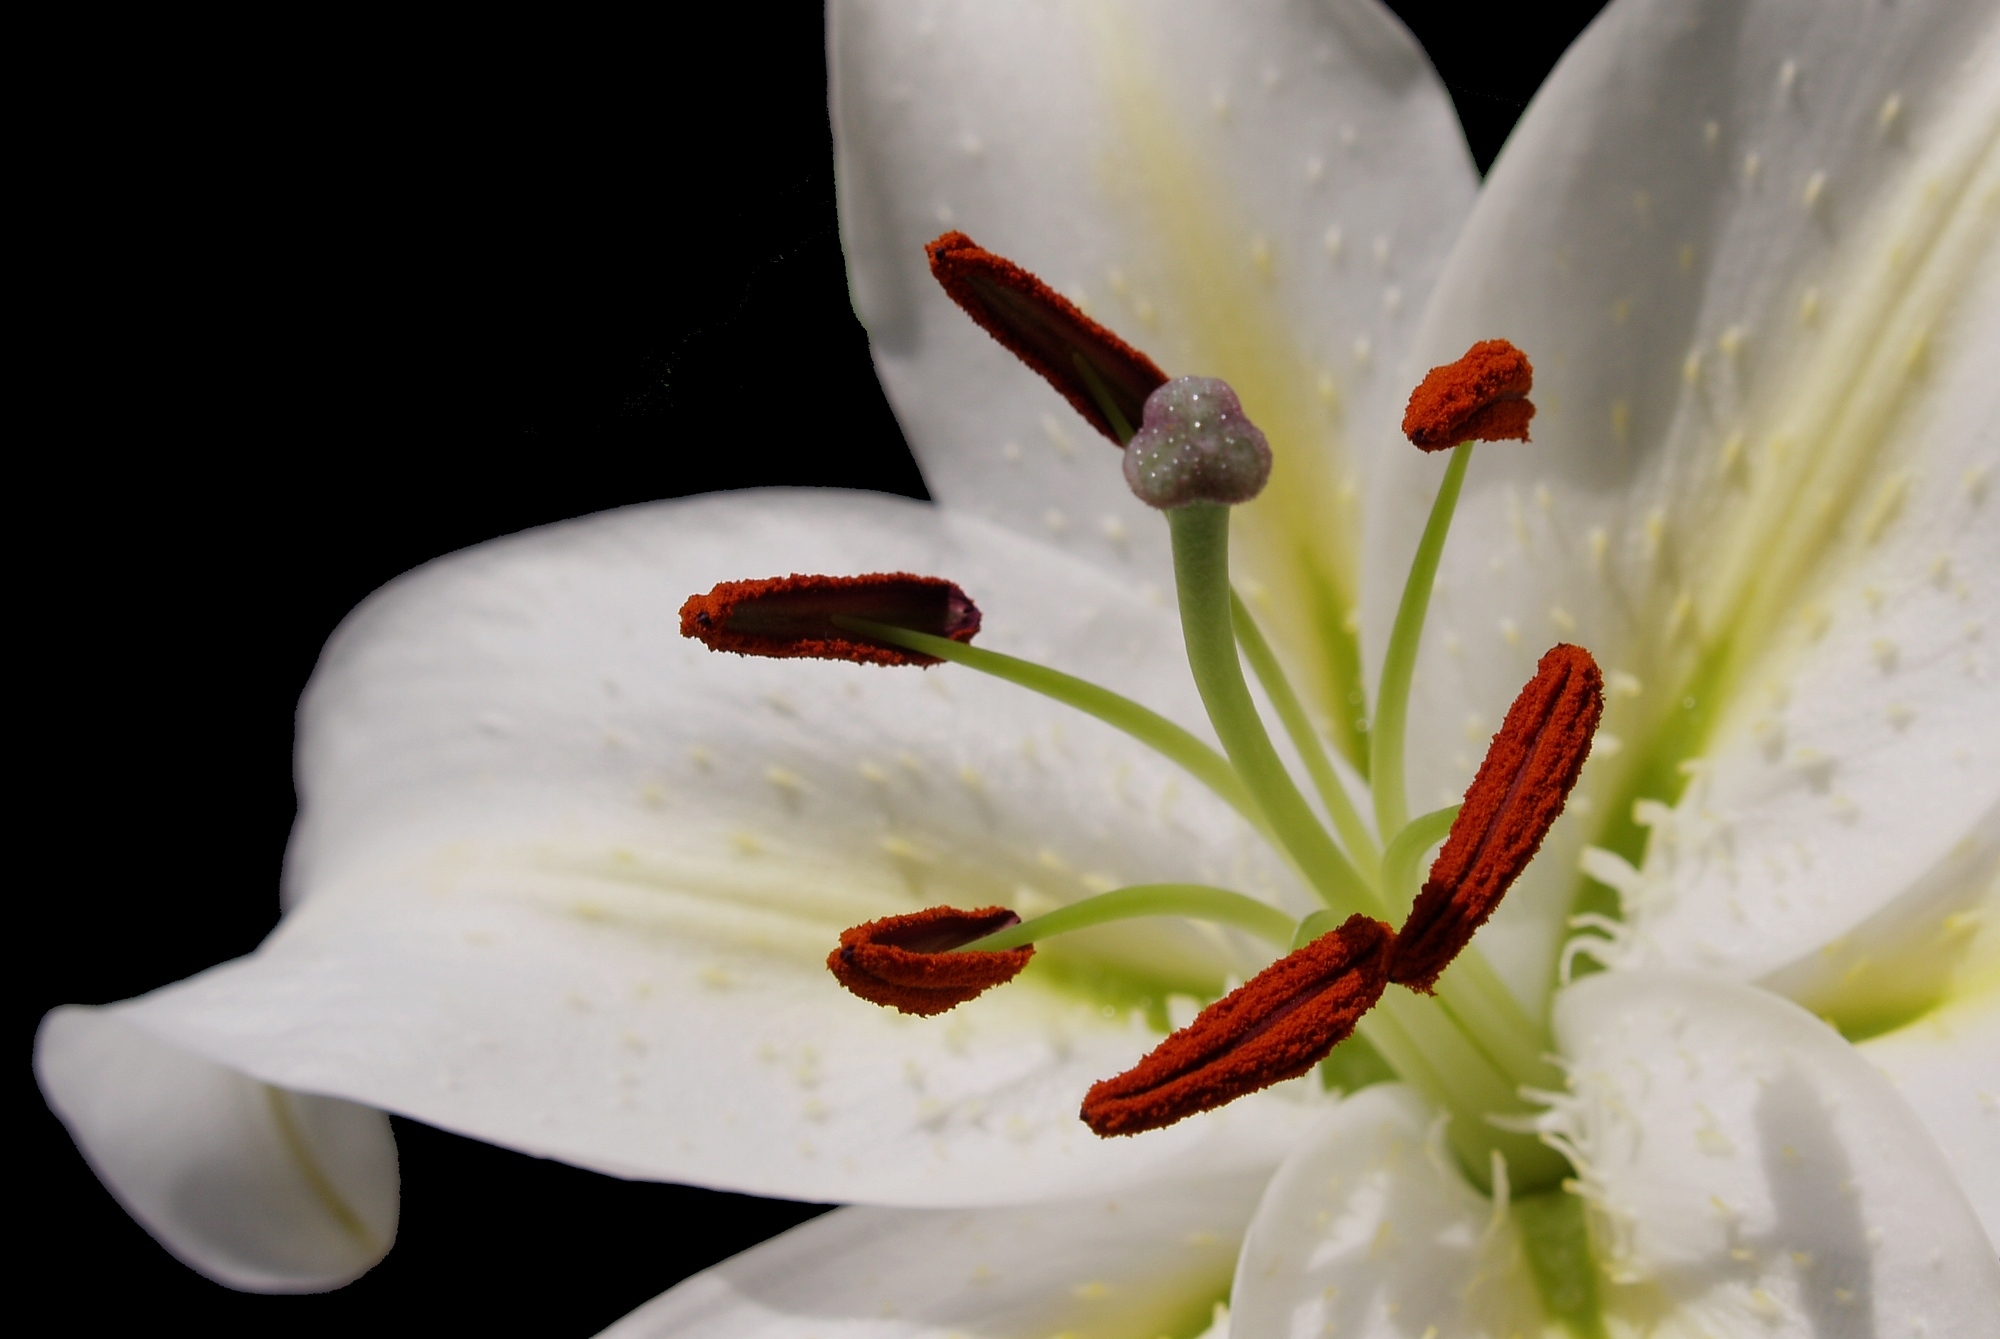 About The Beautiful Casa Blanca Lily Flower Press